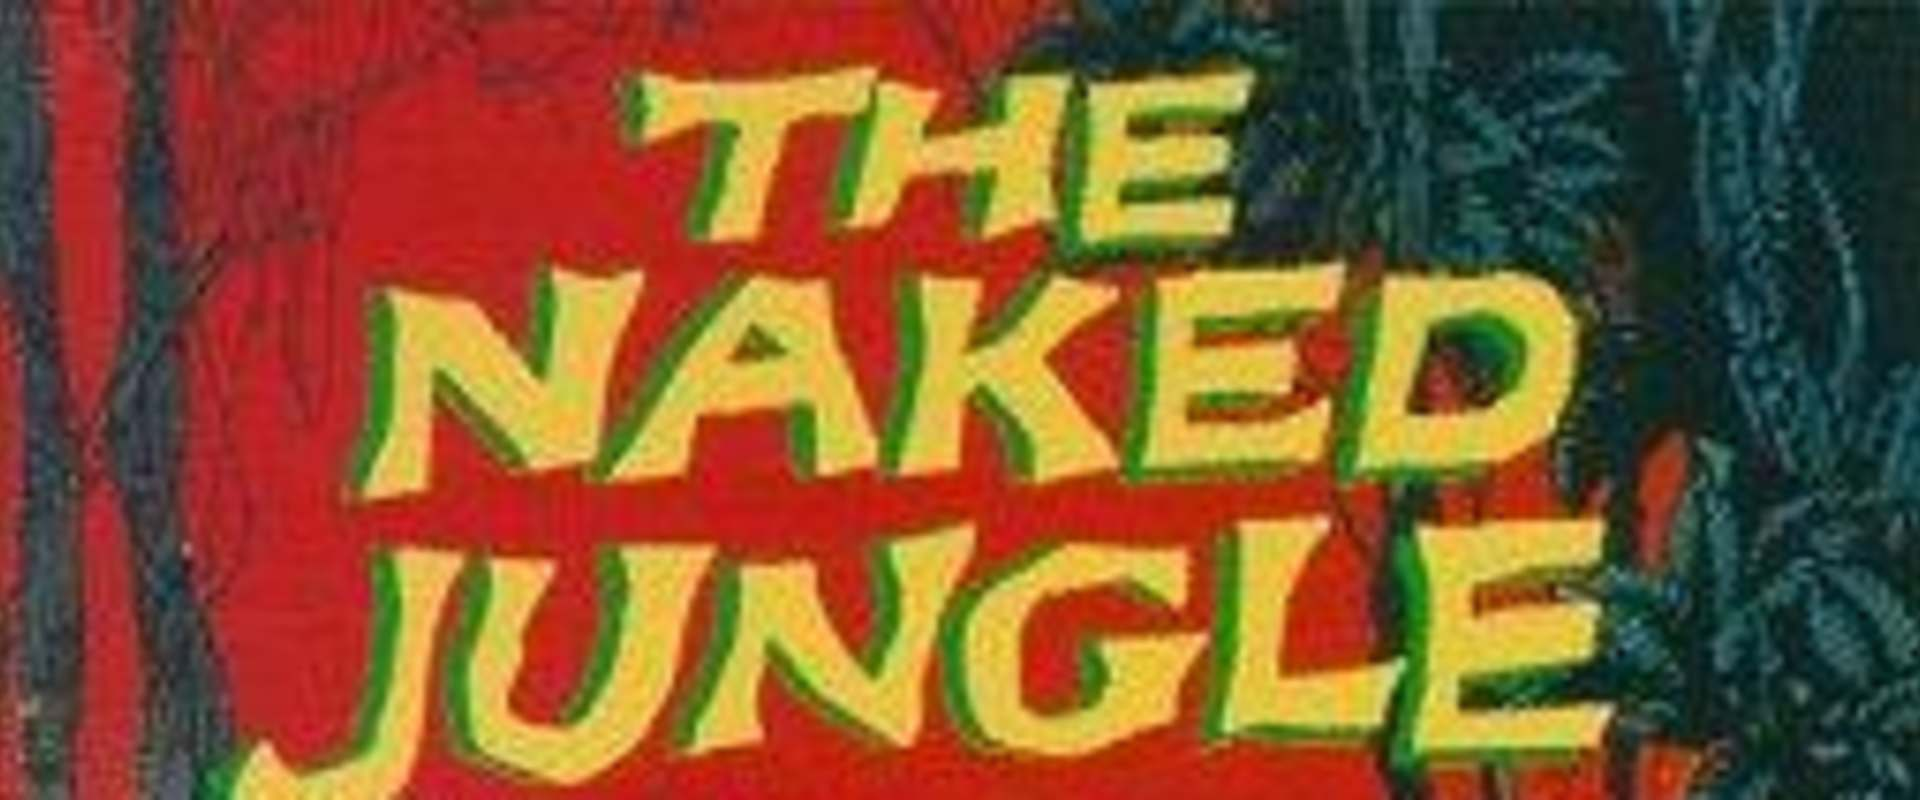 The Naked Jungle background 2